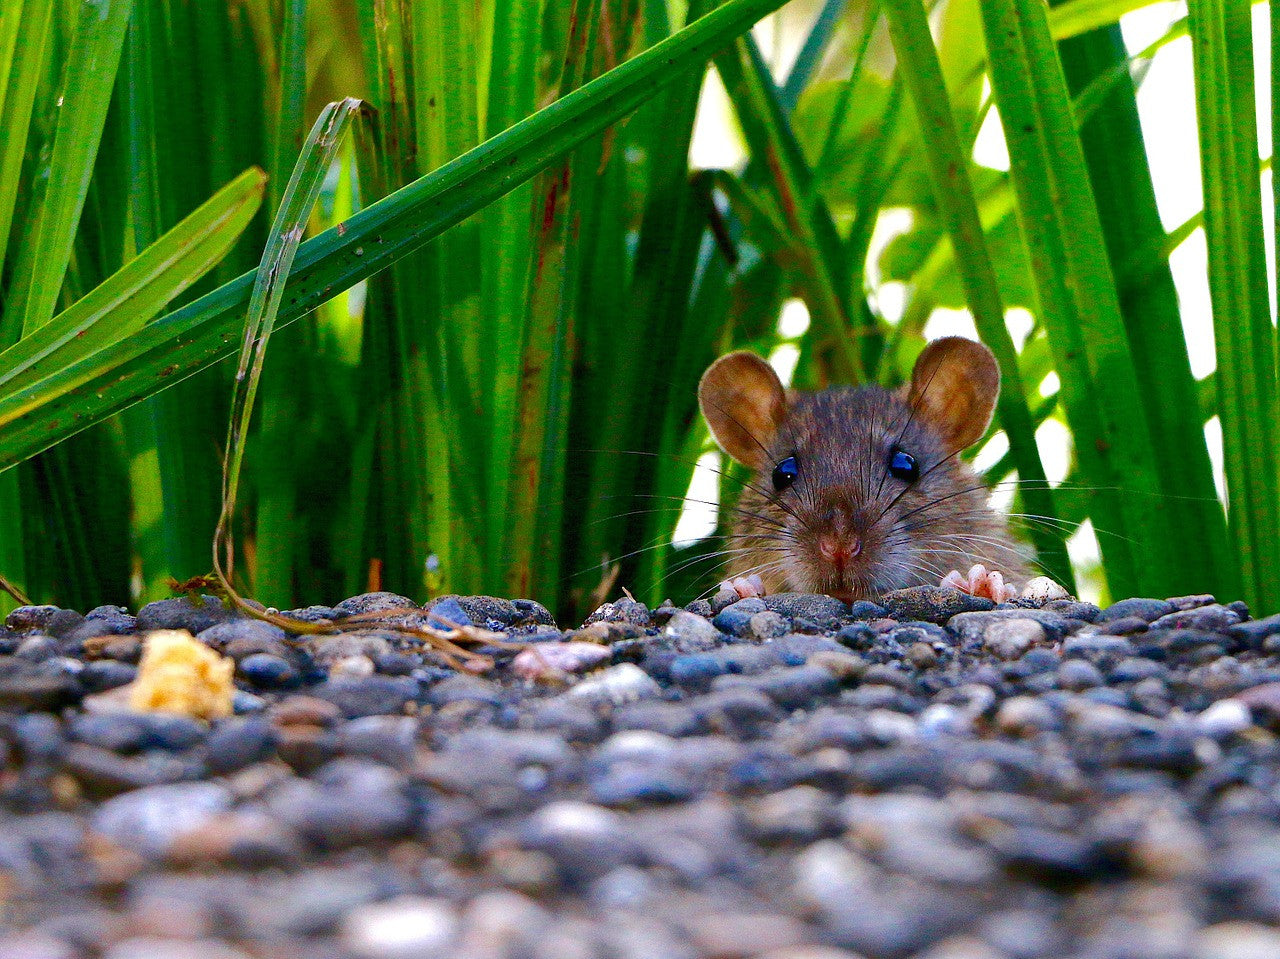 Humane Ways to Deal with Mice and Rats in Your Home